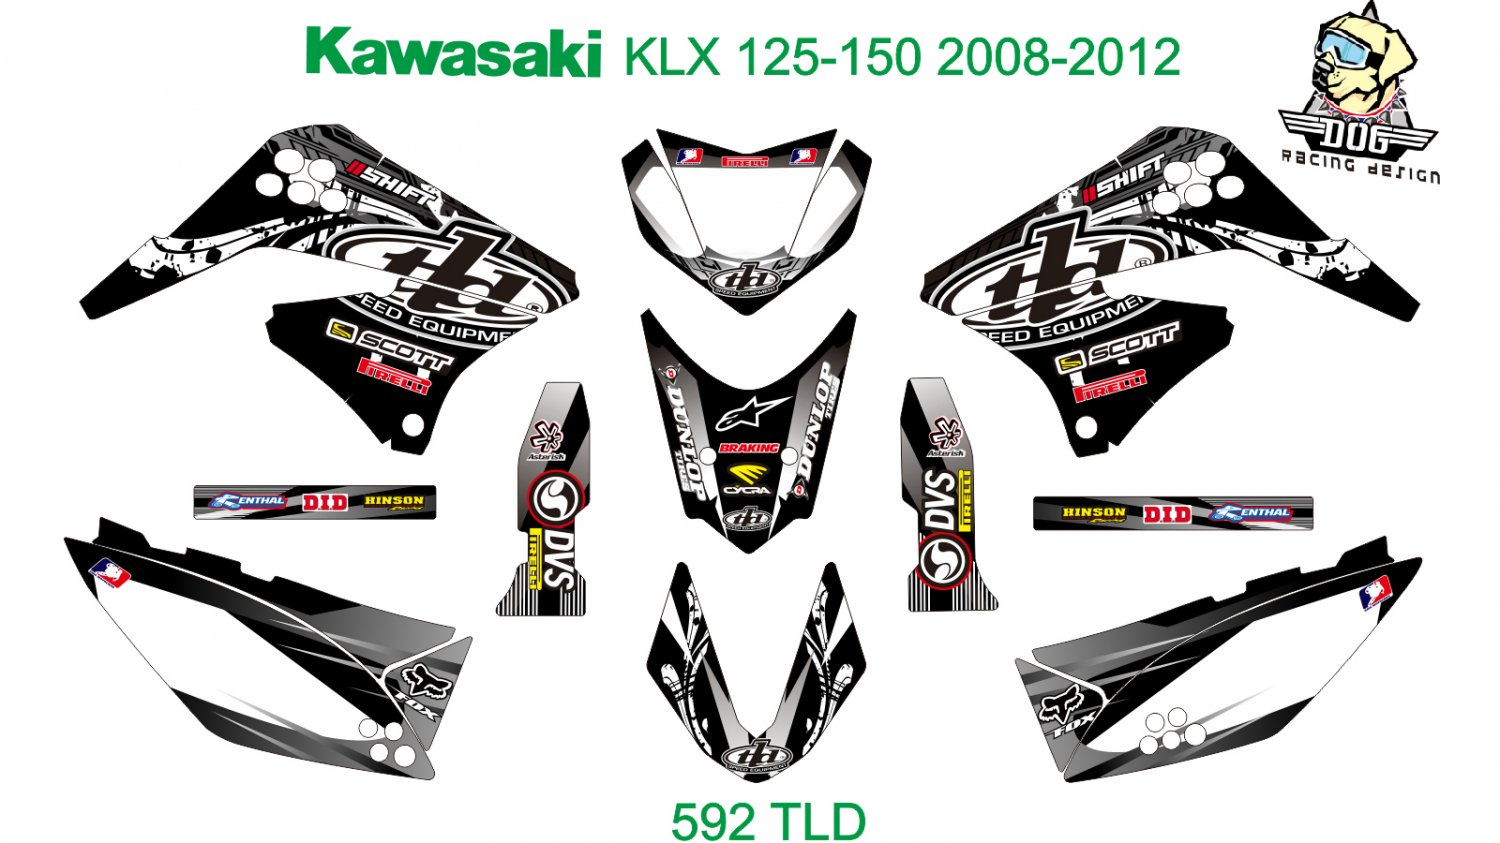 KAWASAKI KLX 125-150 2008-2012 GRAPHIC DECAL KIT CODE.592